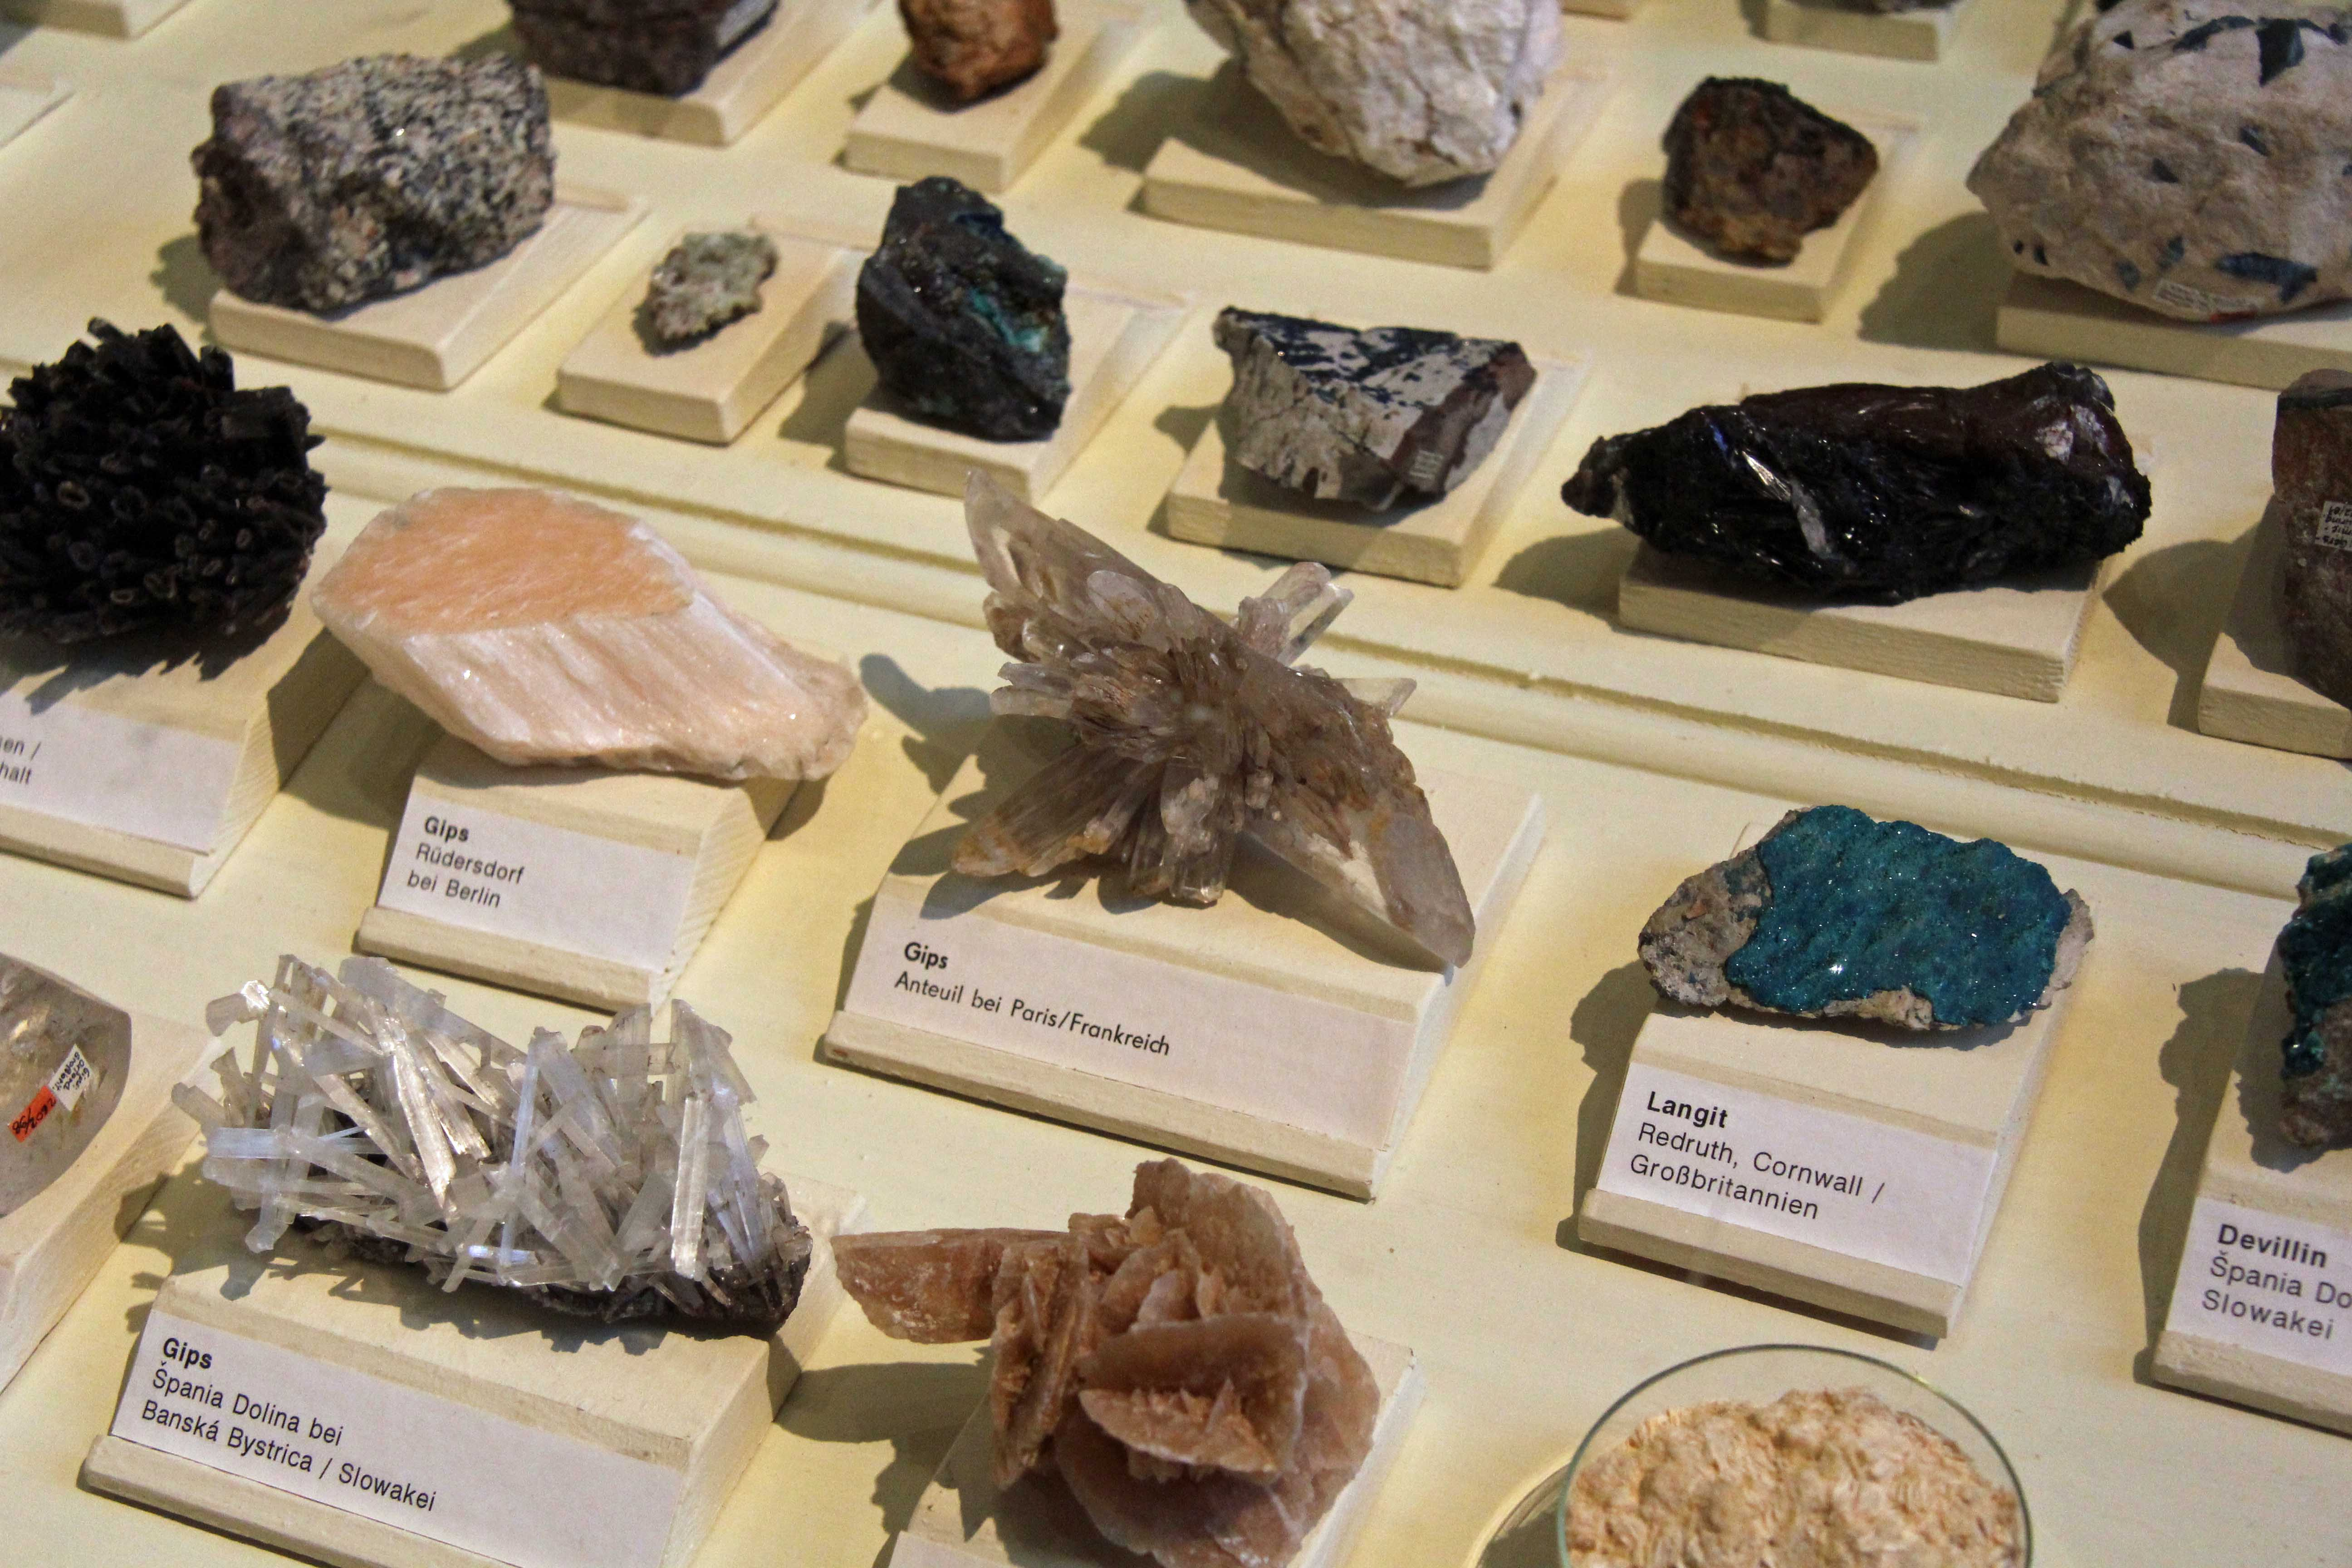 Just a few of the samples on display in the Minerals exhibition at the Museum für Naturkunde (Natural History Museum) in Berlin